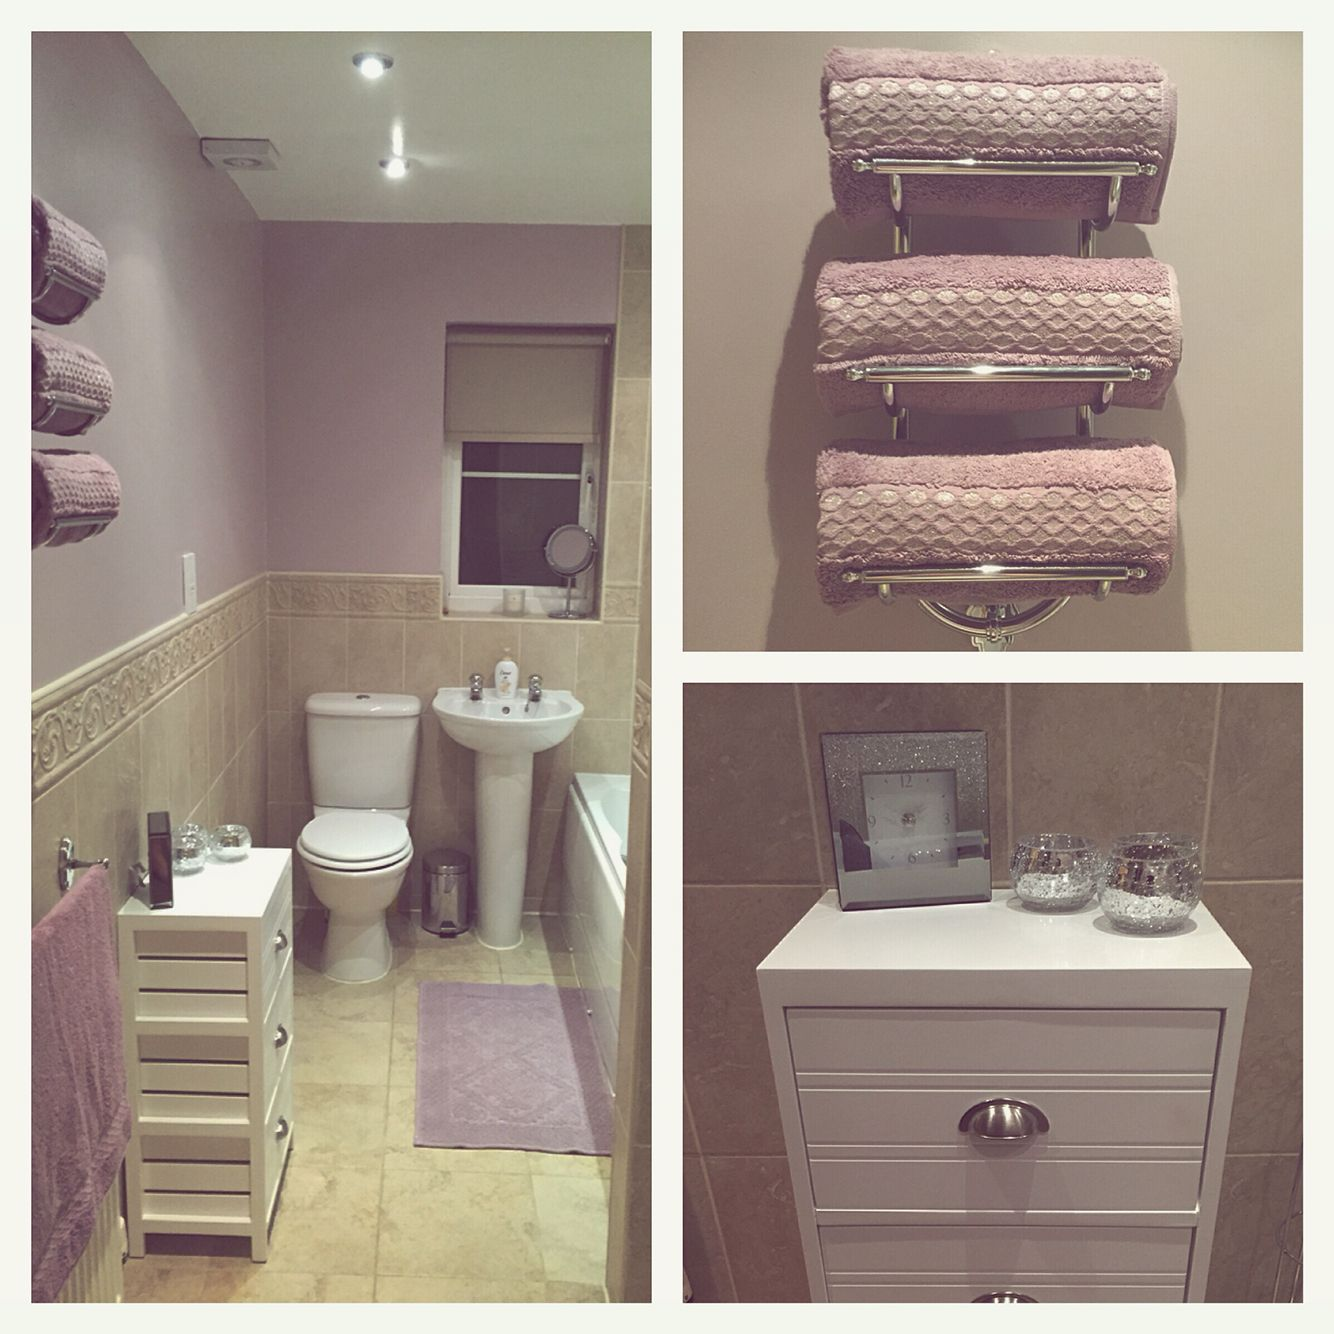 Bathroom Paint Dulux Dusted Fondant Fittings And Furniture Next Bathroom Inspiration Bathroom Images Dulux Bathroom Paint